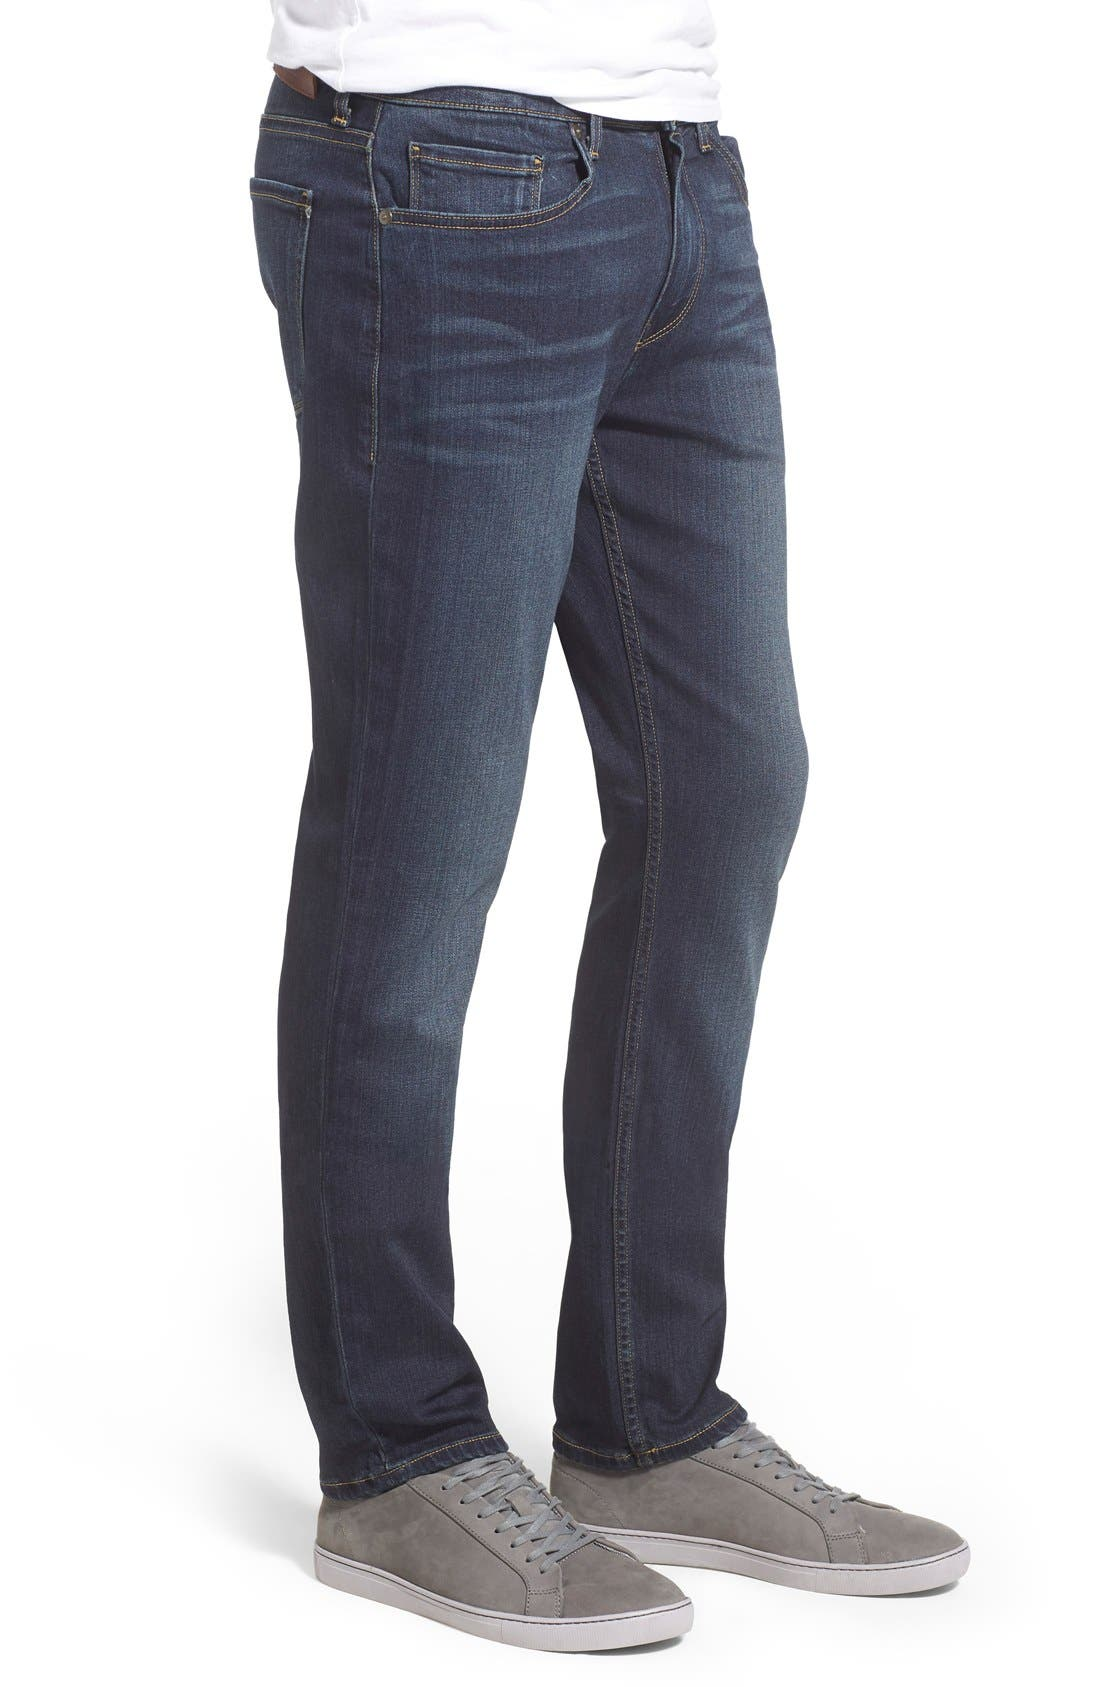 Lennox Slim Fit Jeans,                             Alternate thumbnail 3, color,                             Rigby